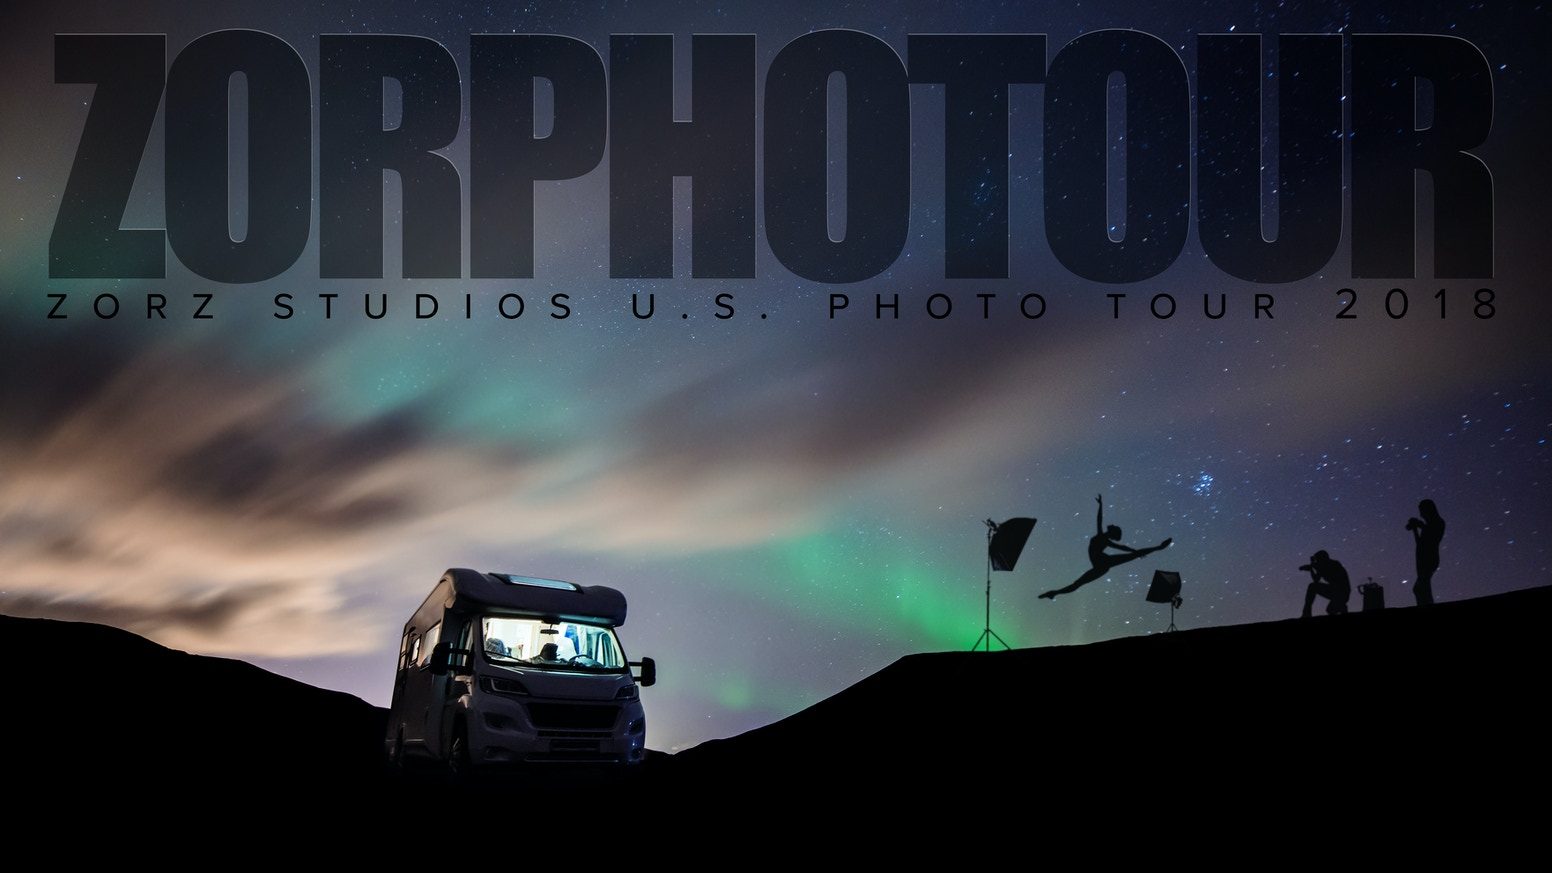 NYC photographers of Zorz Studios are loading up an RV with gear to drive for a month around the USA shooting daring epic portraits.